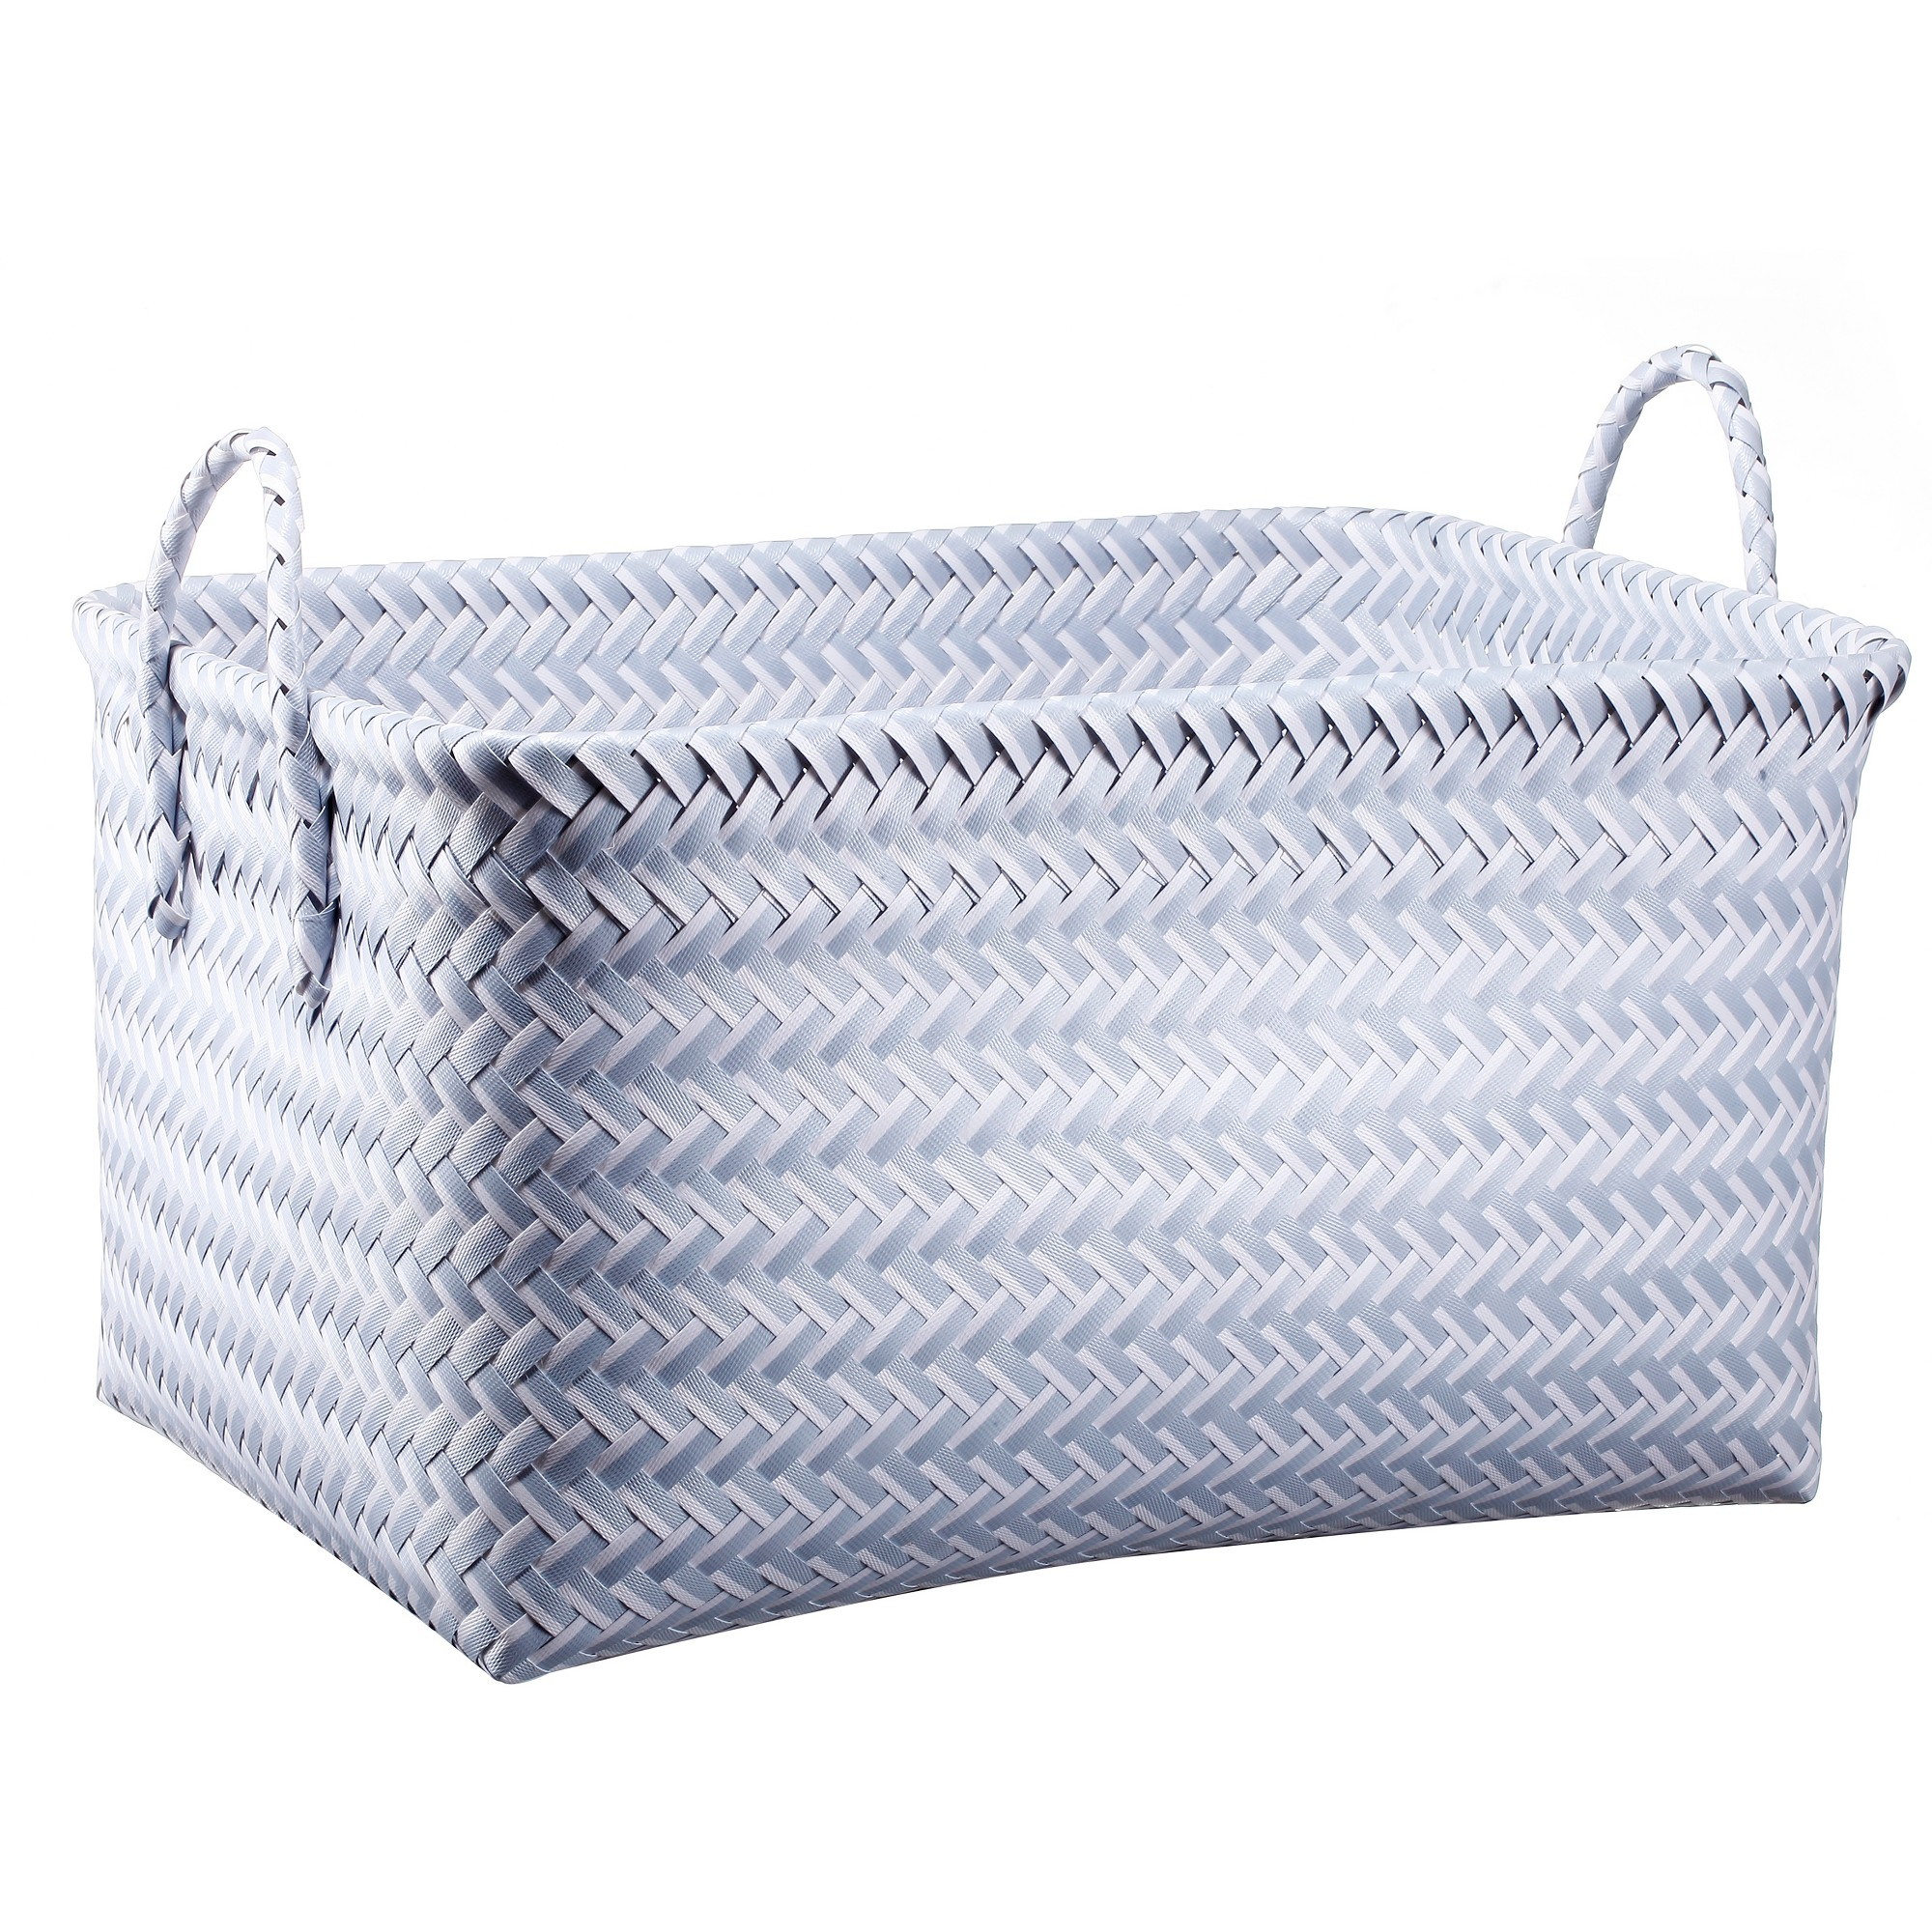 Large Woven Rectangular Storage Basket Blue Room Essentials White Baskets Gift